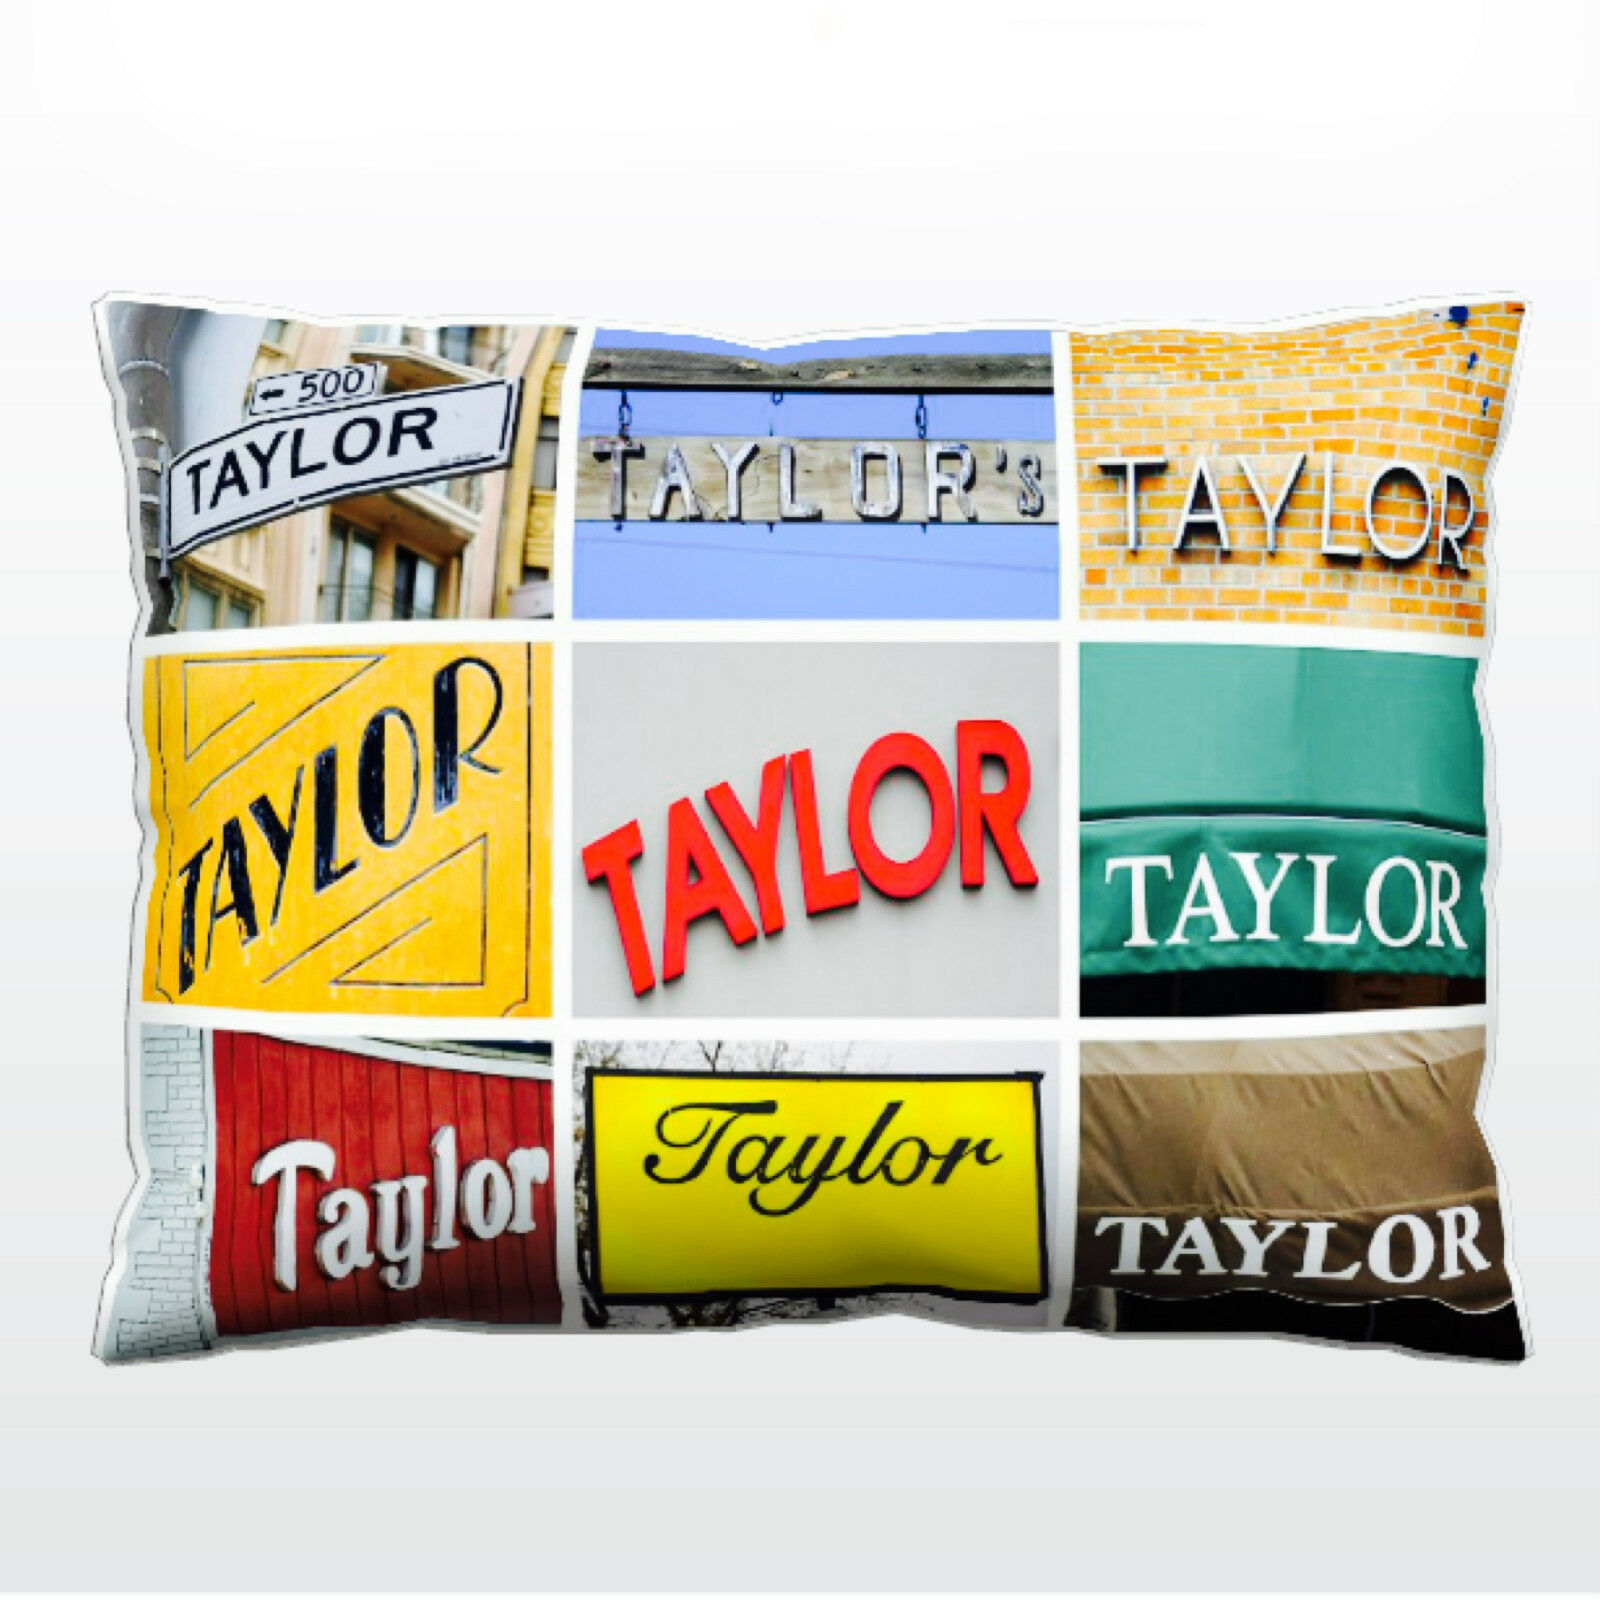 Personalized Pillow featuring the name TAYLOR in photos of actual signs